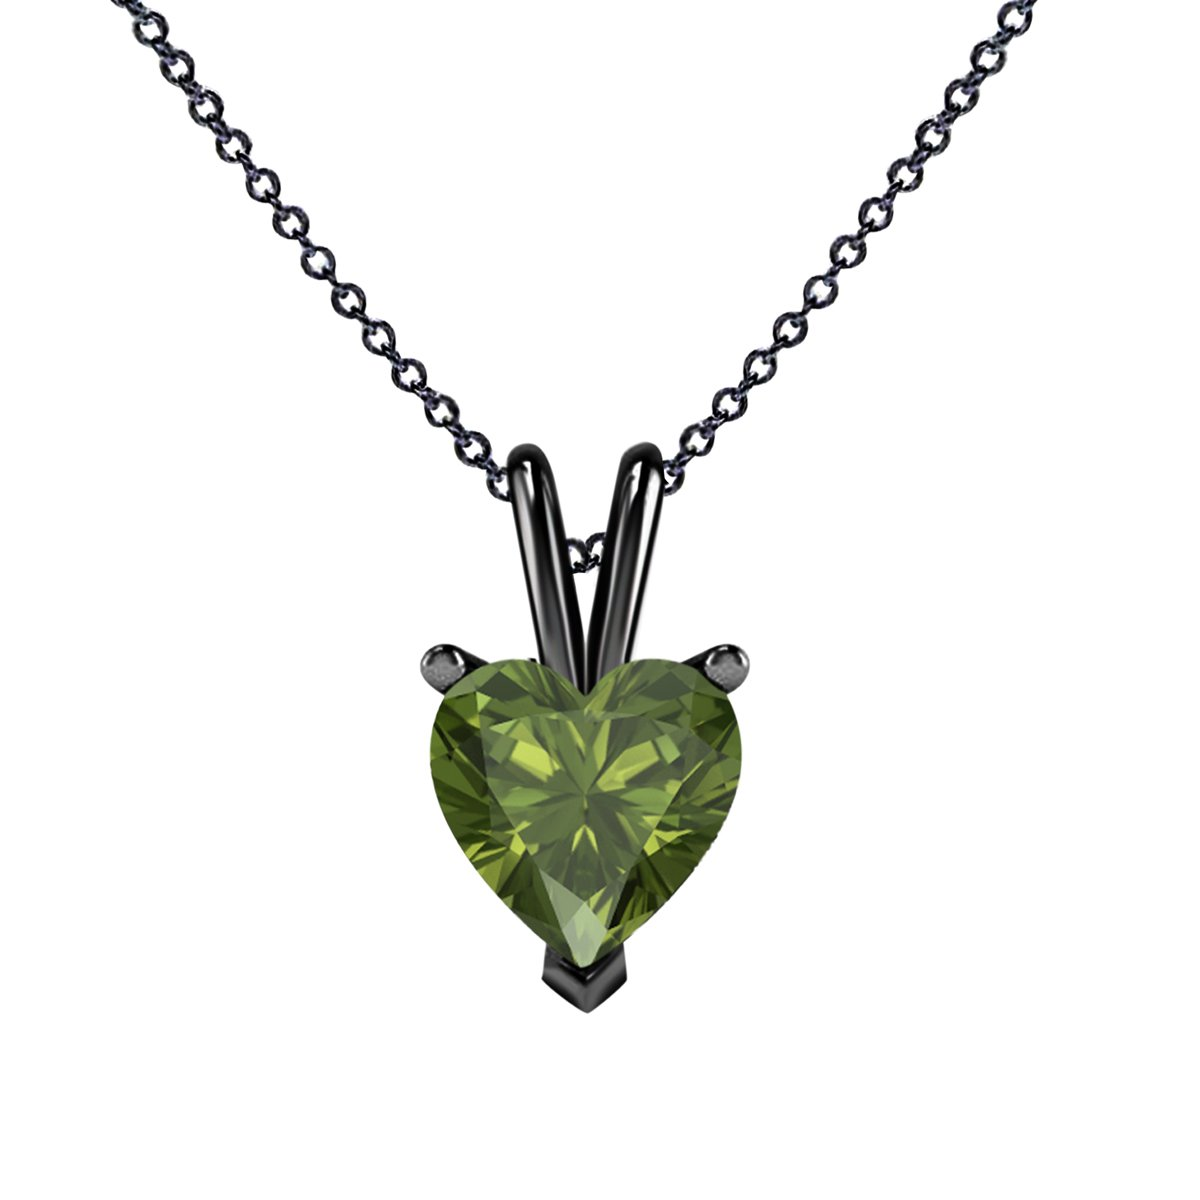 Womens Jewelry Set Heart Shape Highest Quality 6MM 6MM Lab Created Green Tourmaline Solitaire Pendant 18 Chain Necklace for Ledis 14K Black Gold Rhodium Plated Alloy